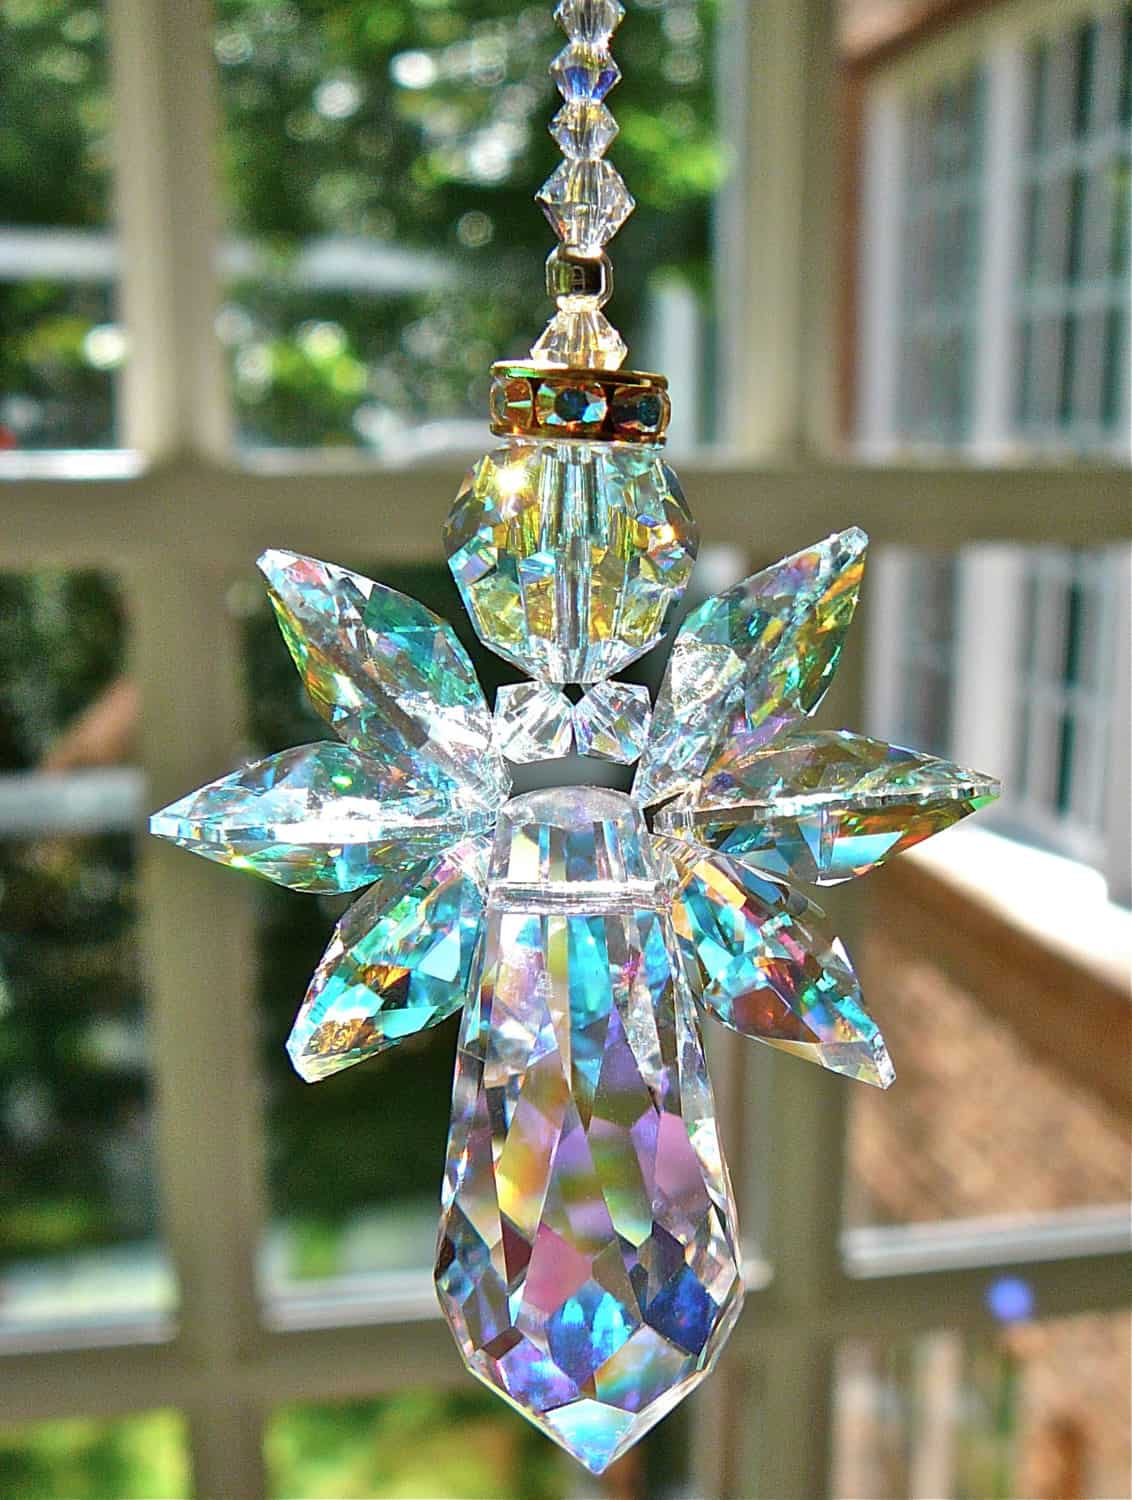 Crystal bead angel suncatcher 15 DIY Christmas Window Hangers that Are Cute